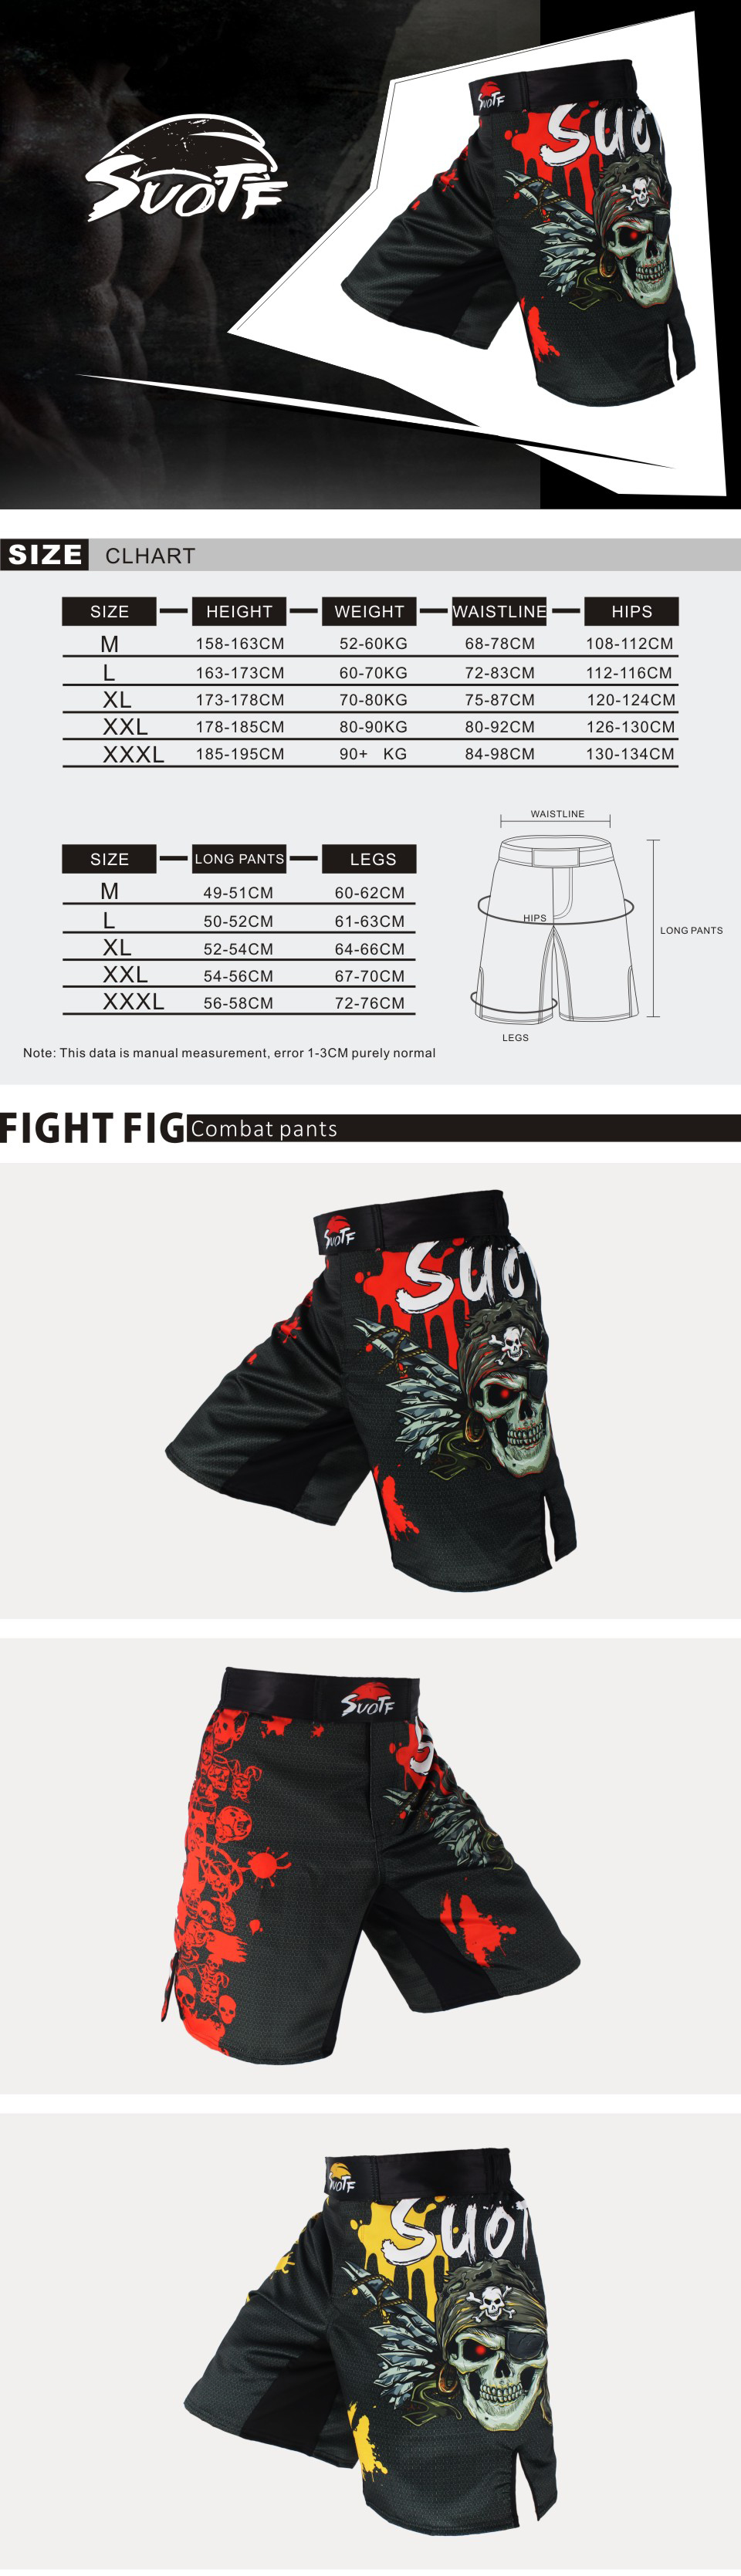 SUOTF Skull Printing breathable ferocious sports fitness shorts Tiger Muay Thai boxing shorts cheap mma shorts fight mma pants